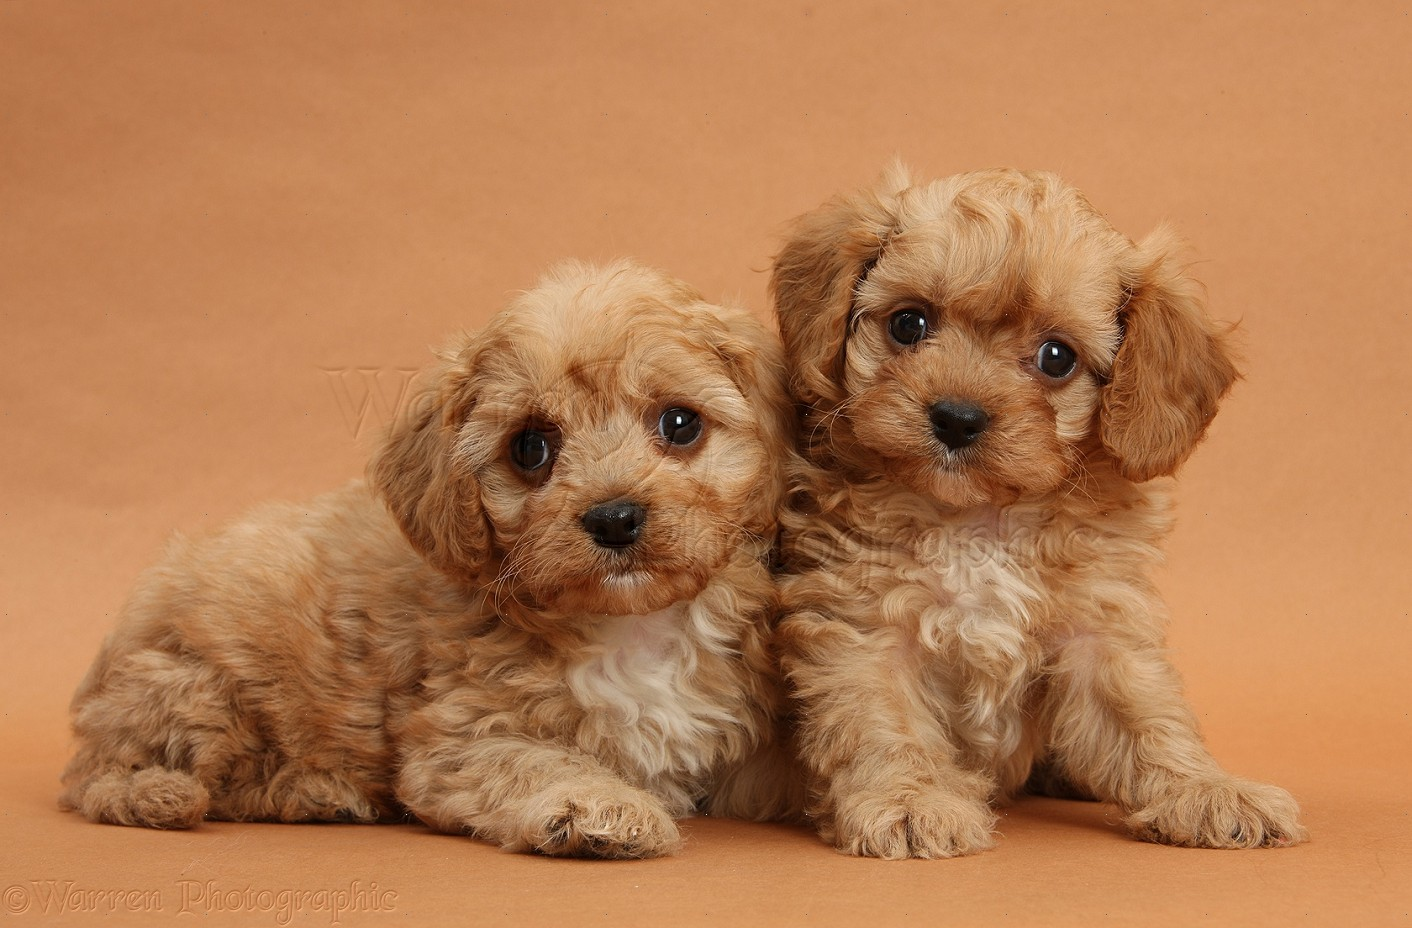 Cavapoo Dog Breed Information And Pictures